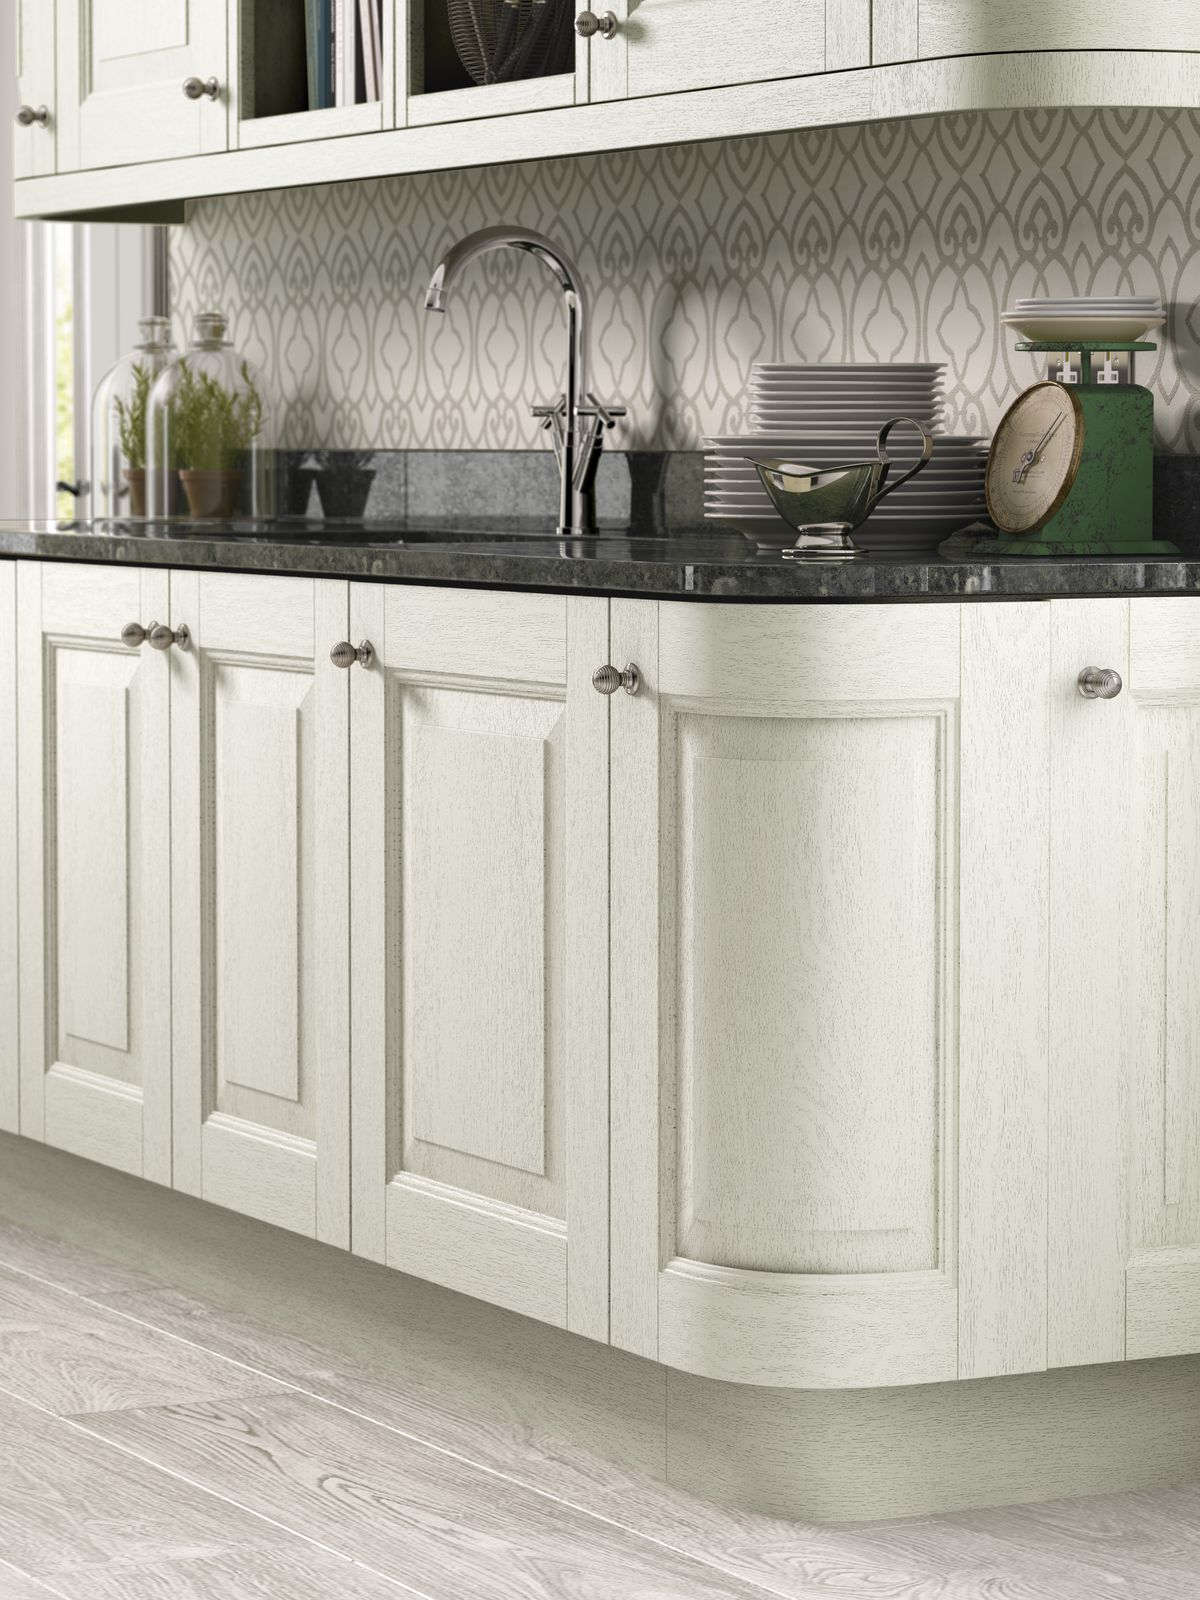 Wexford Ivory Detail 2-1600x1600